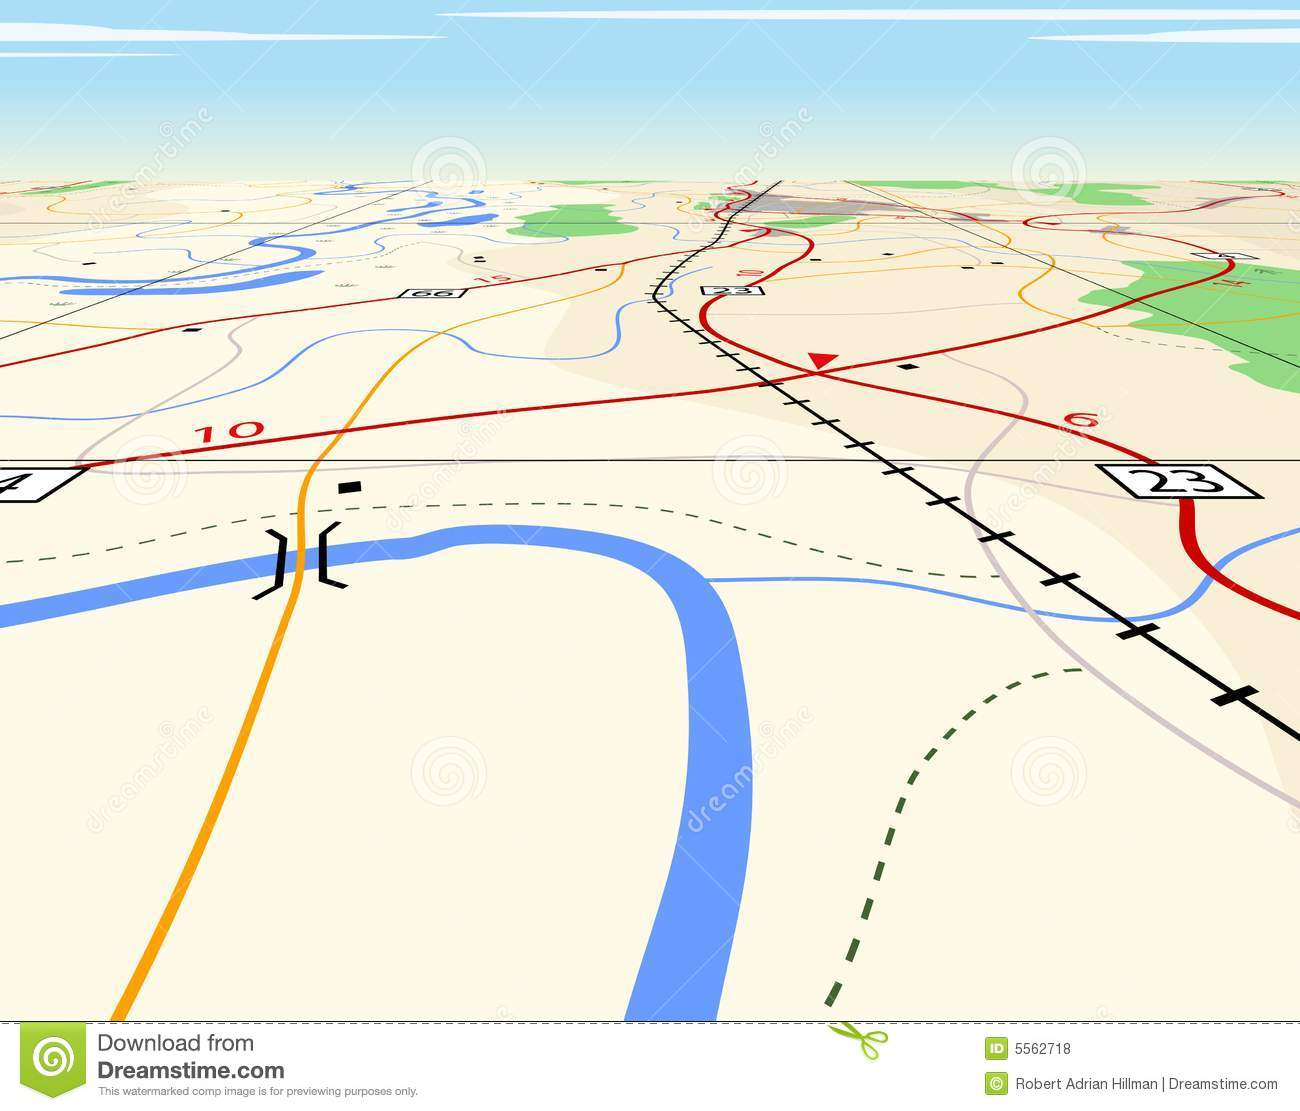 Generic road map clipart picture royalty free Map Perspective Royalty Free Stock Photos - Image: 5562718 picture royalty free